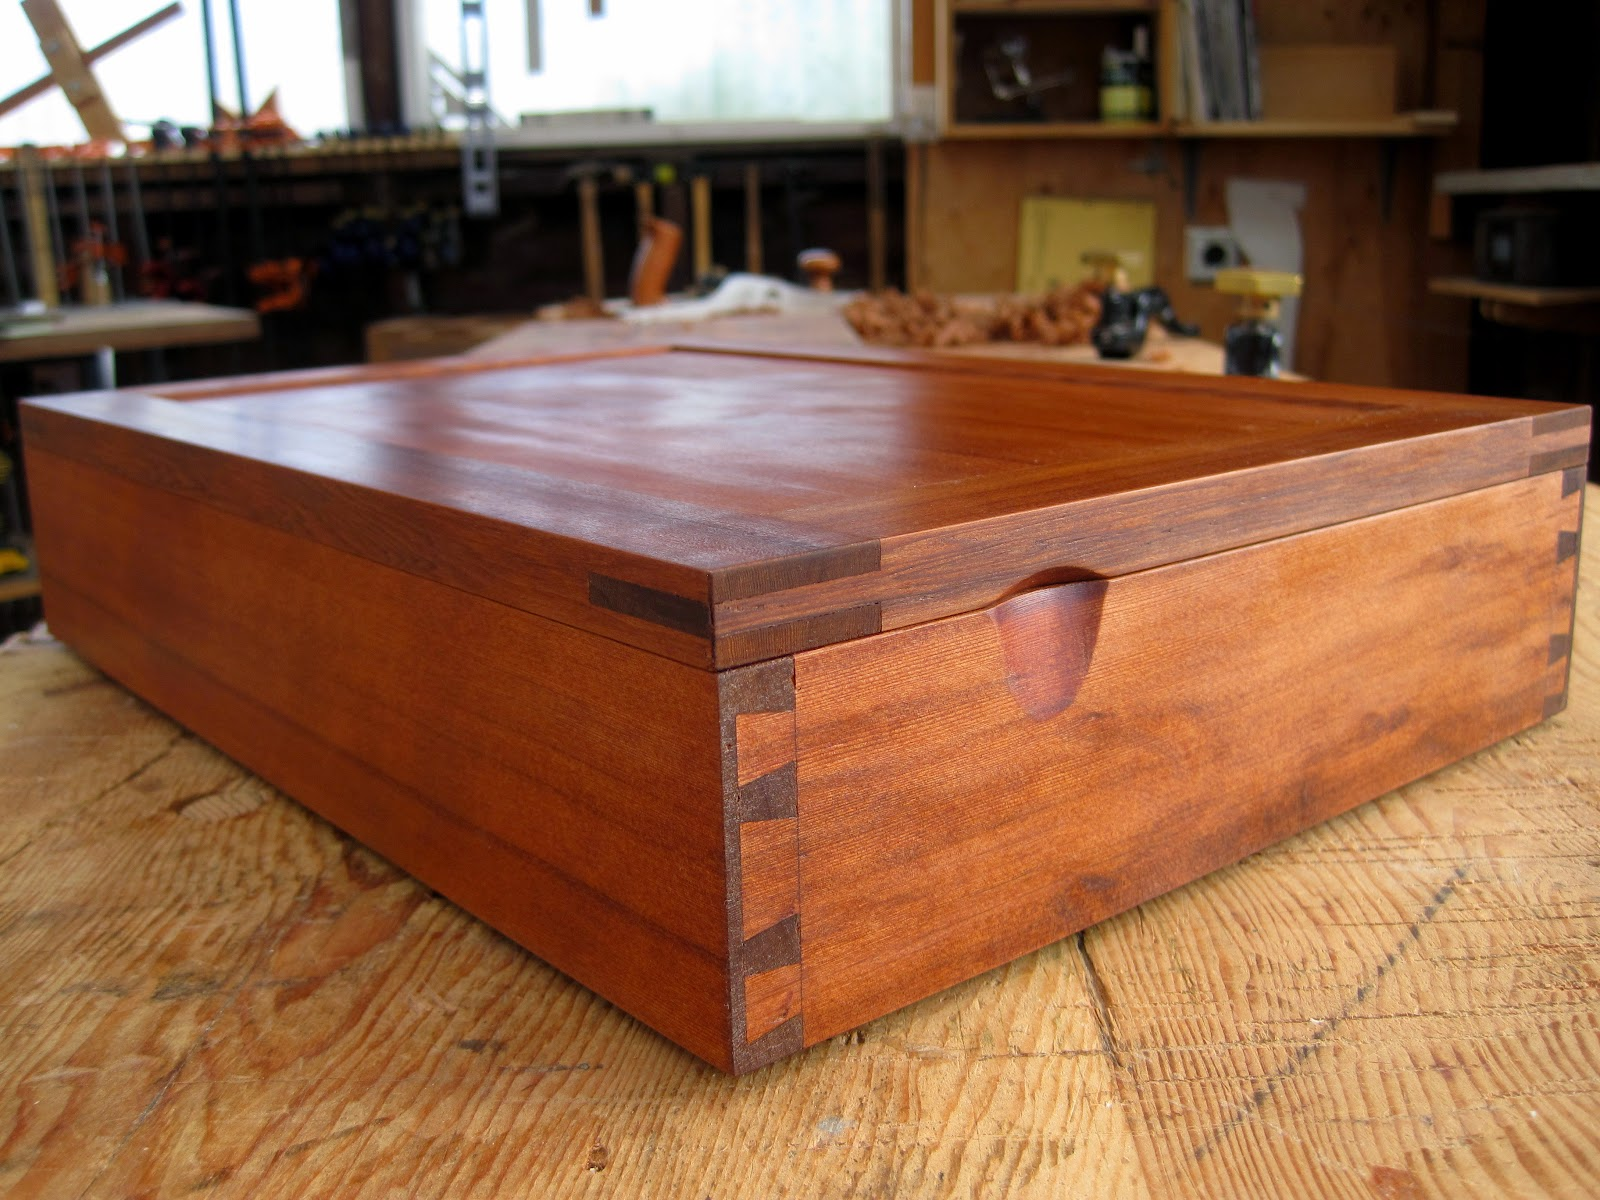 Manual: Diablo Woodworker Club Auction Jewelry Box In Reclaimed Redwood  Part Ii